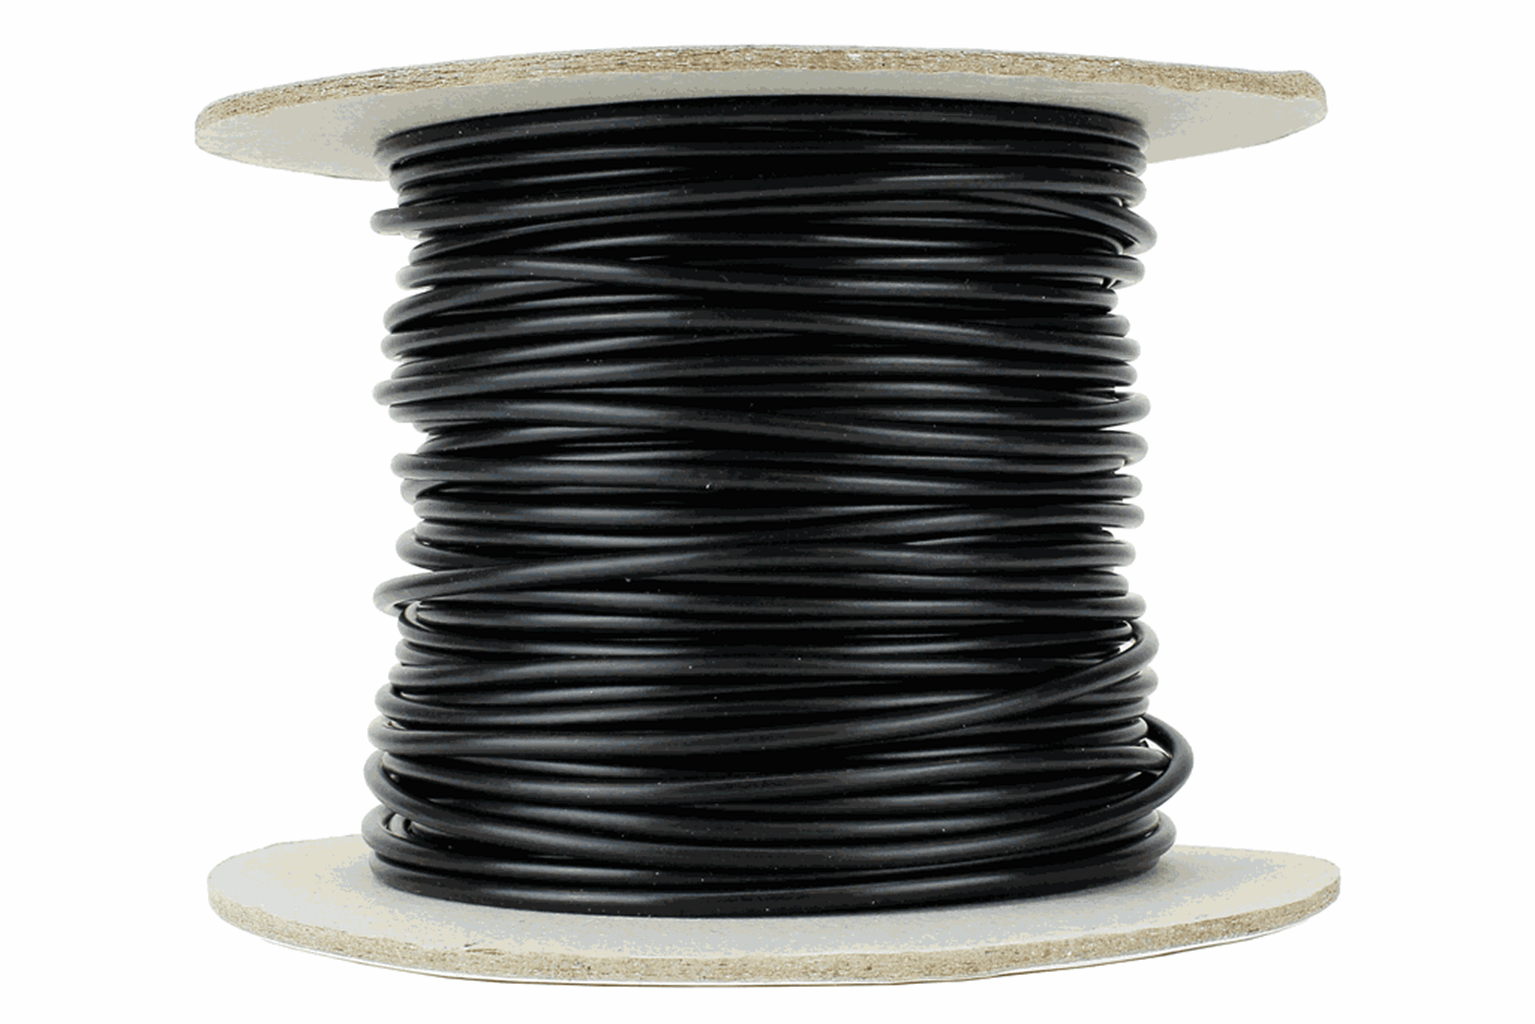 Power Bus Wire 25m of 1.5mm (15g) Black